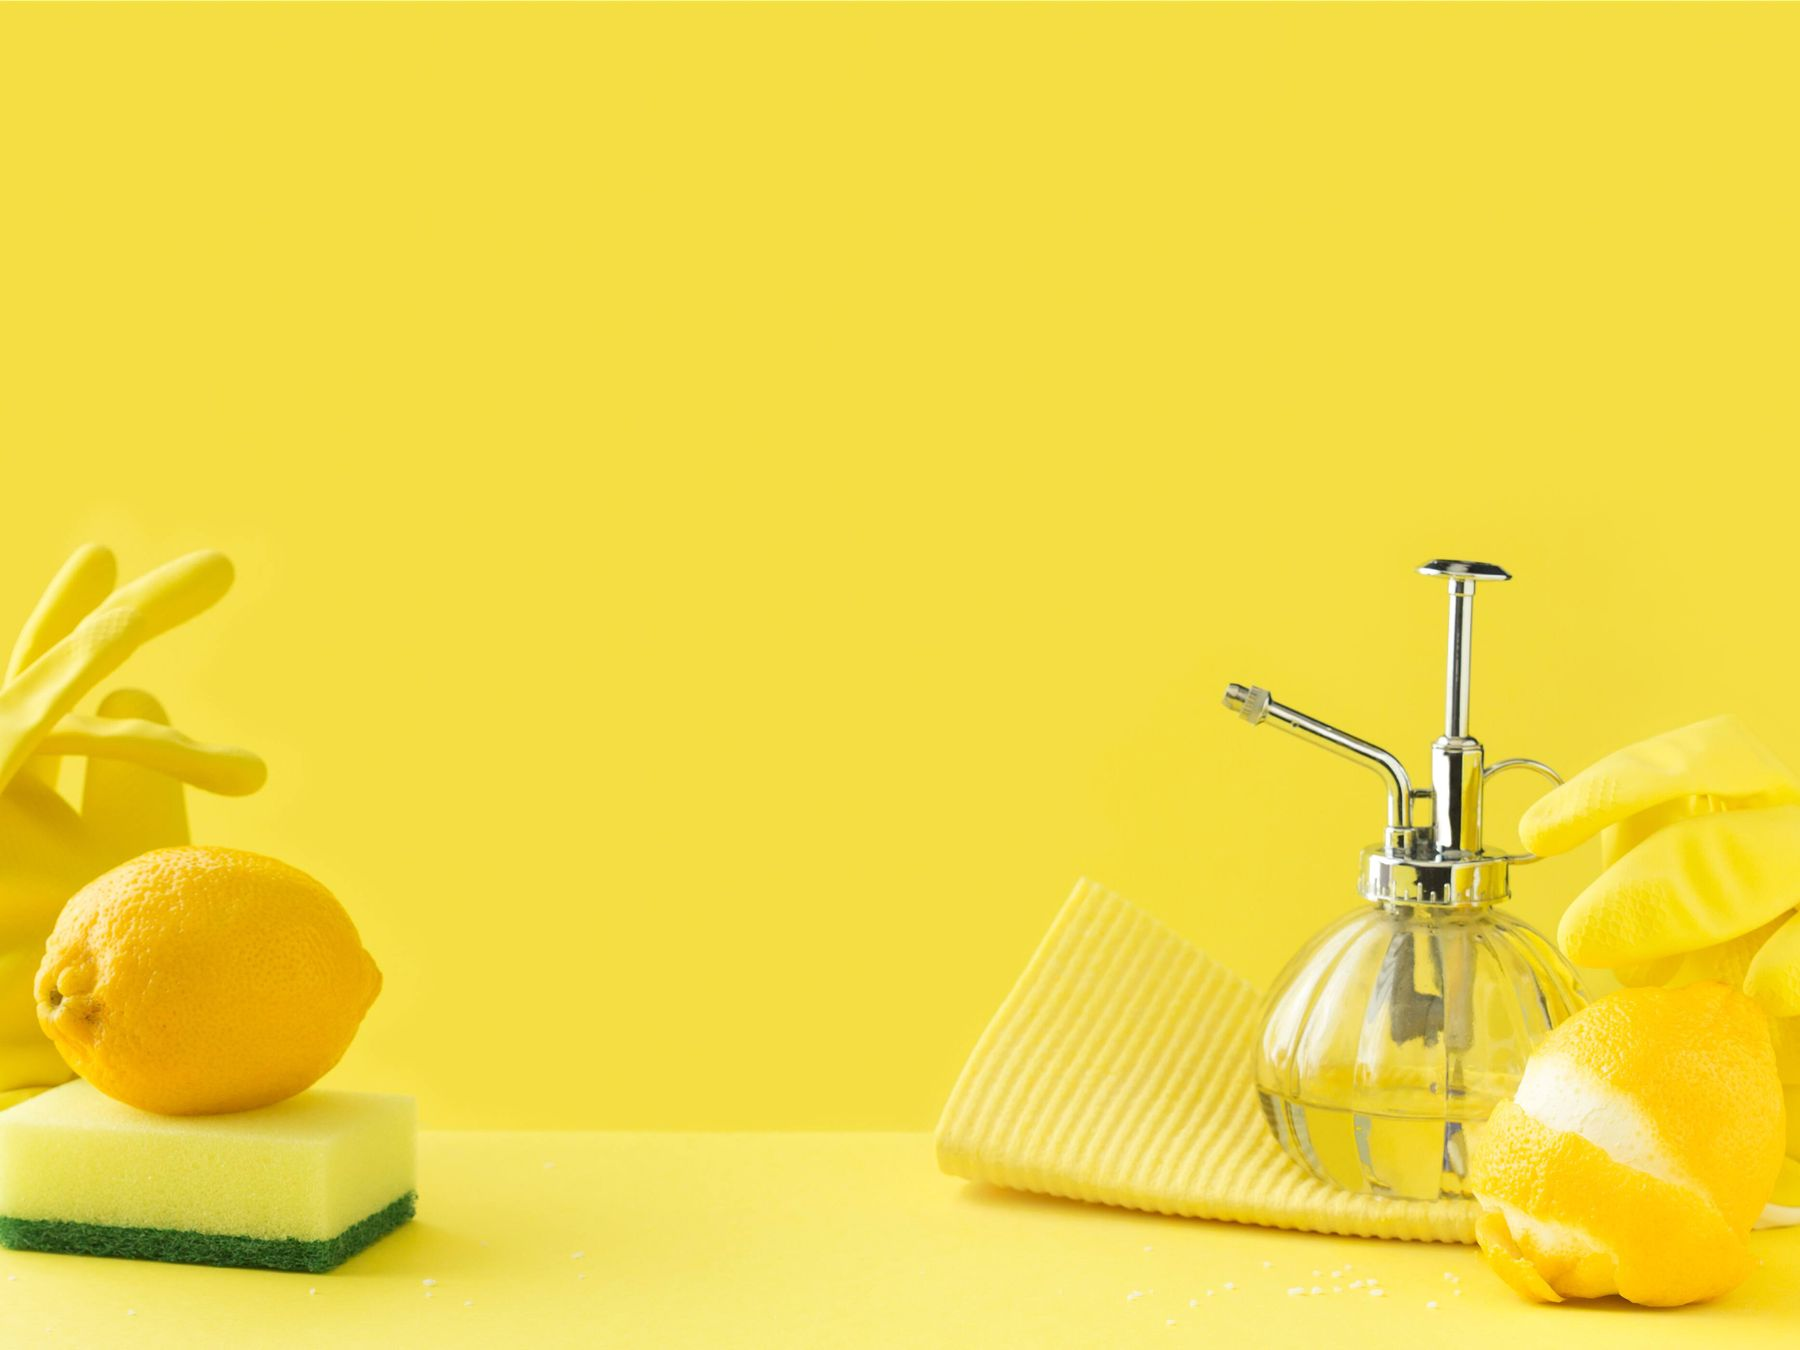 Scented-cleaning-vinegar